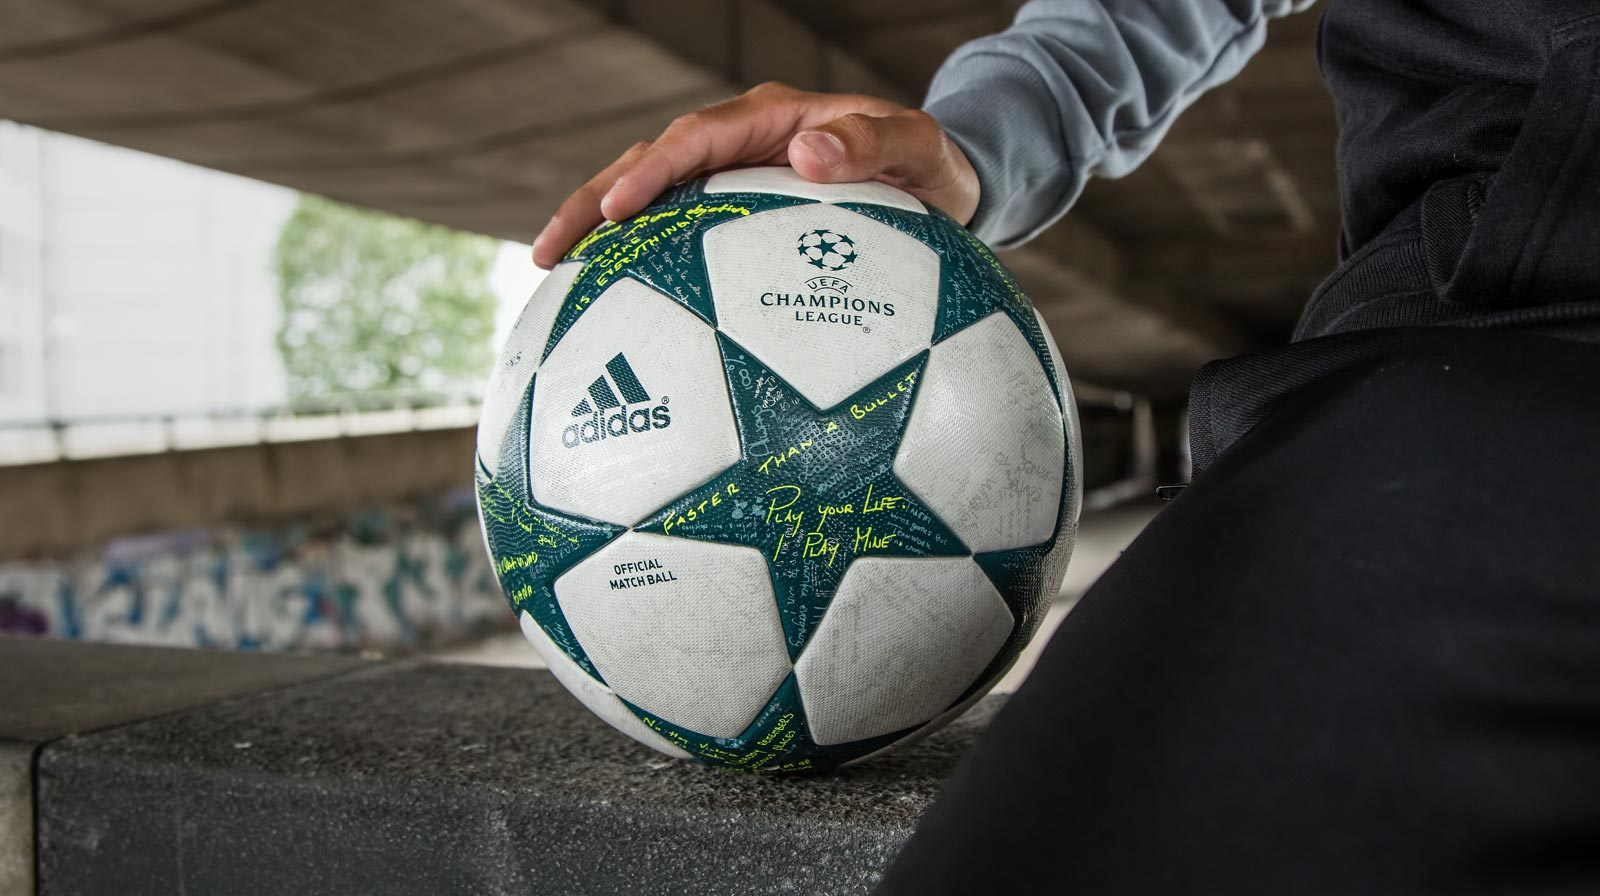 Adidas 16-17 Champions League Ball Released - Footy Headlines